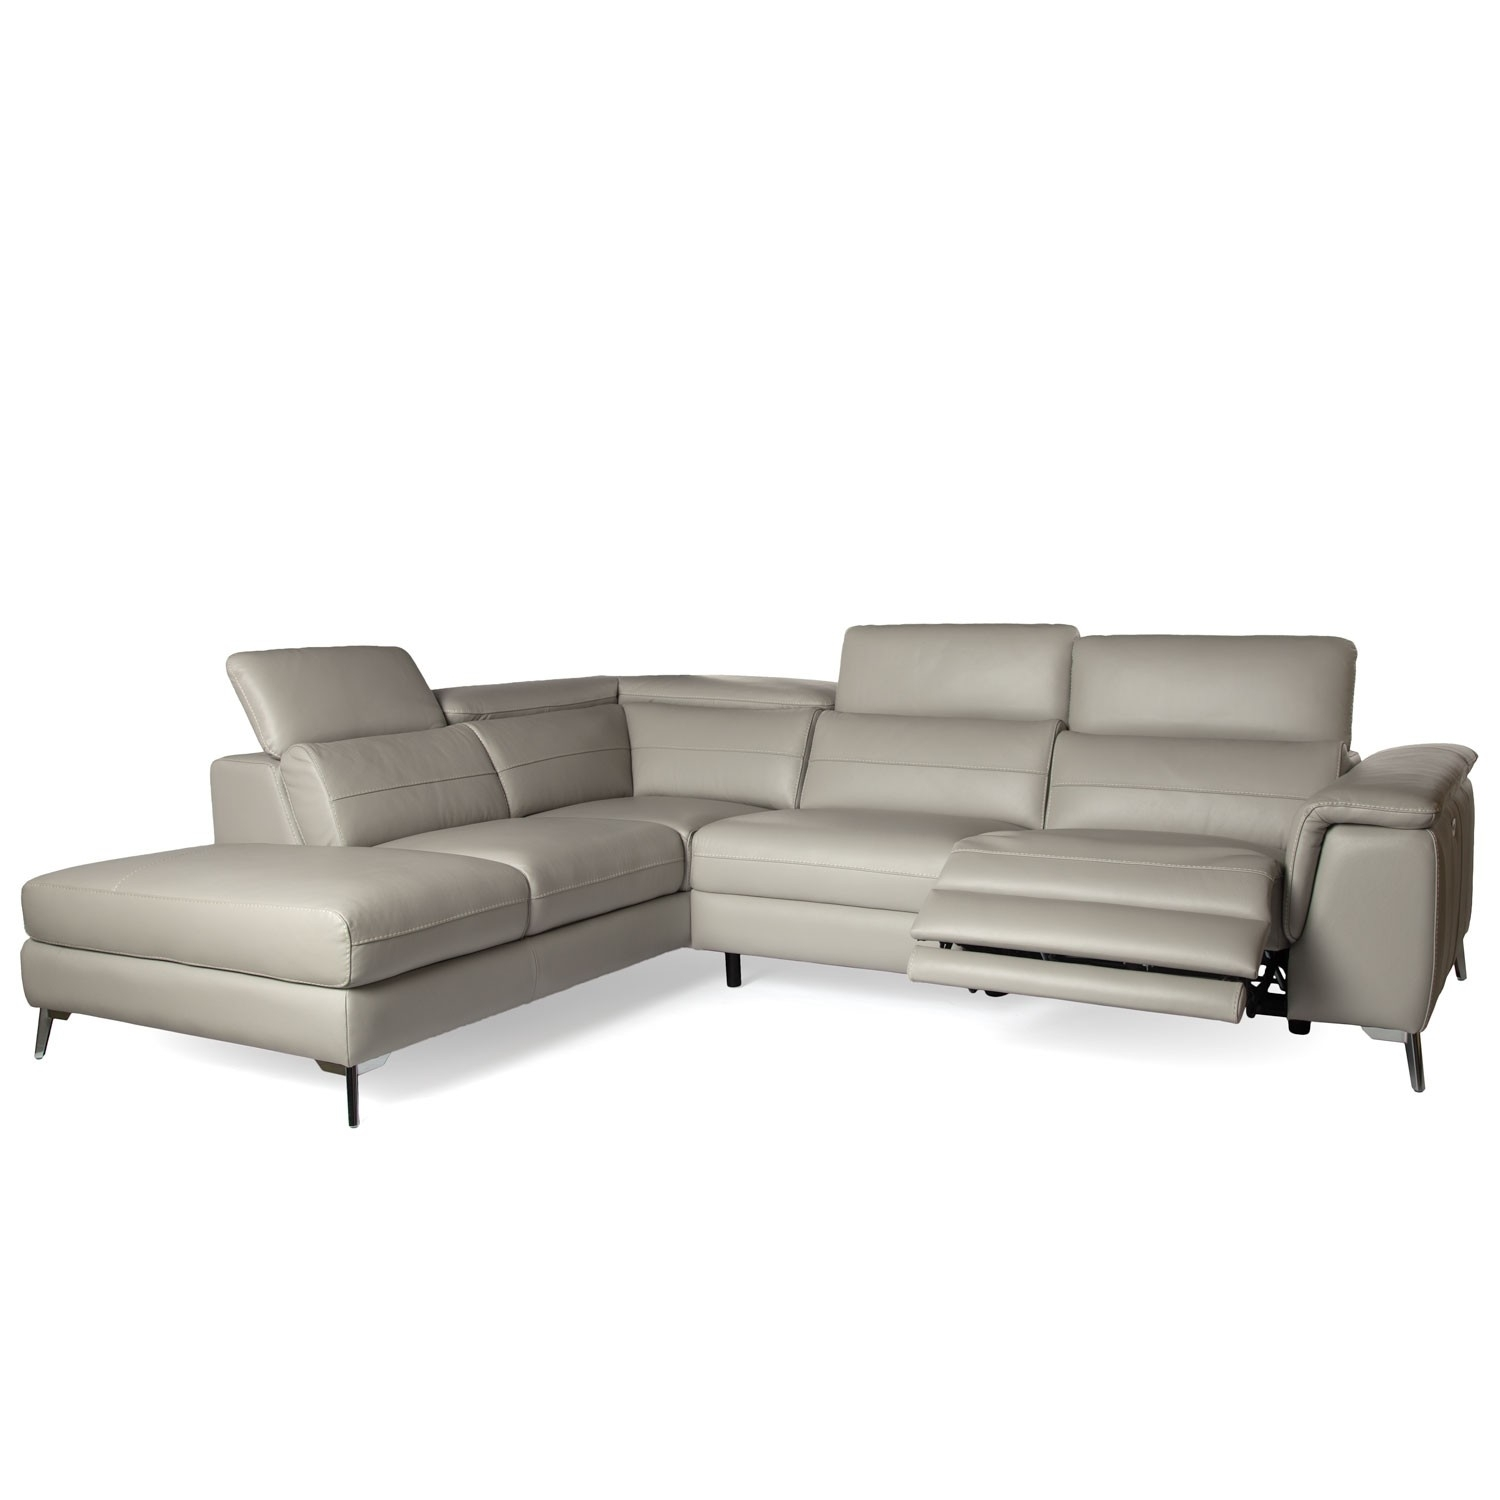 Grey Leather Reclining Sectional Clyde 3 Piece Power W Pwr Hdrst Intended For Clyde Grey Leather 3 Piece Power Reclining Sectionals With Pwr Hdrst & Usb (View 2 of 25)